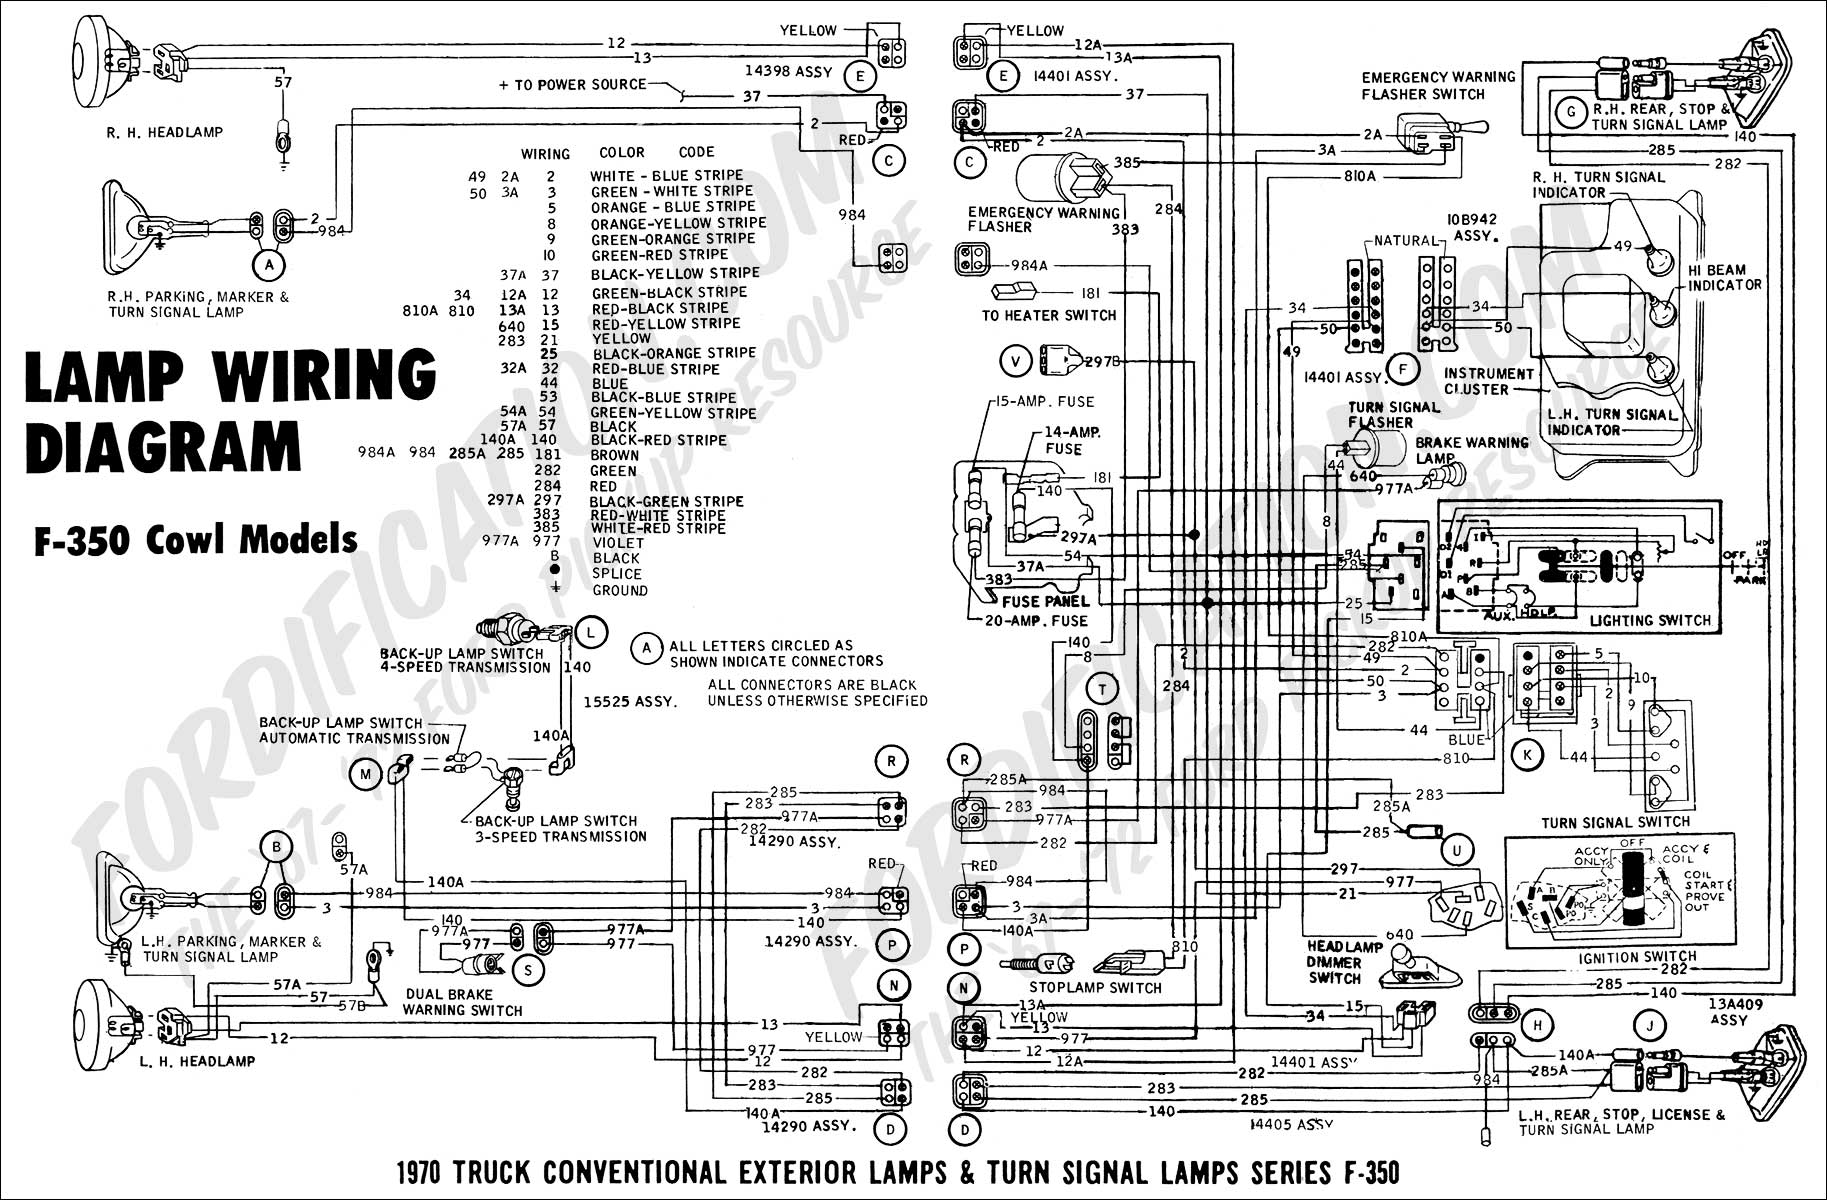 08 Mack Fuse Box Diagram Wiring Libraries Ford Super Duty 02 Granite Library